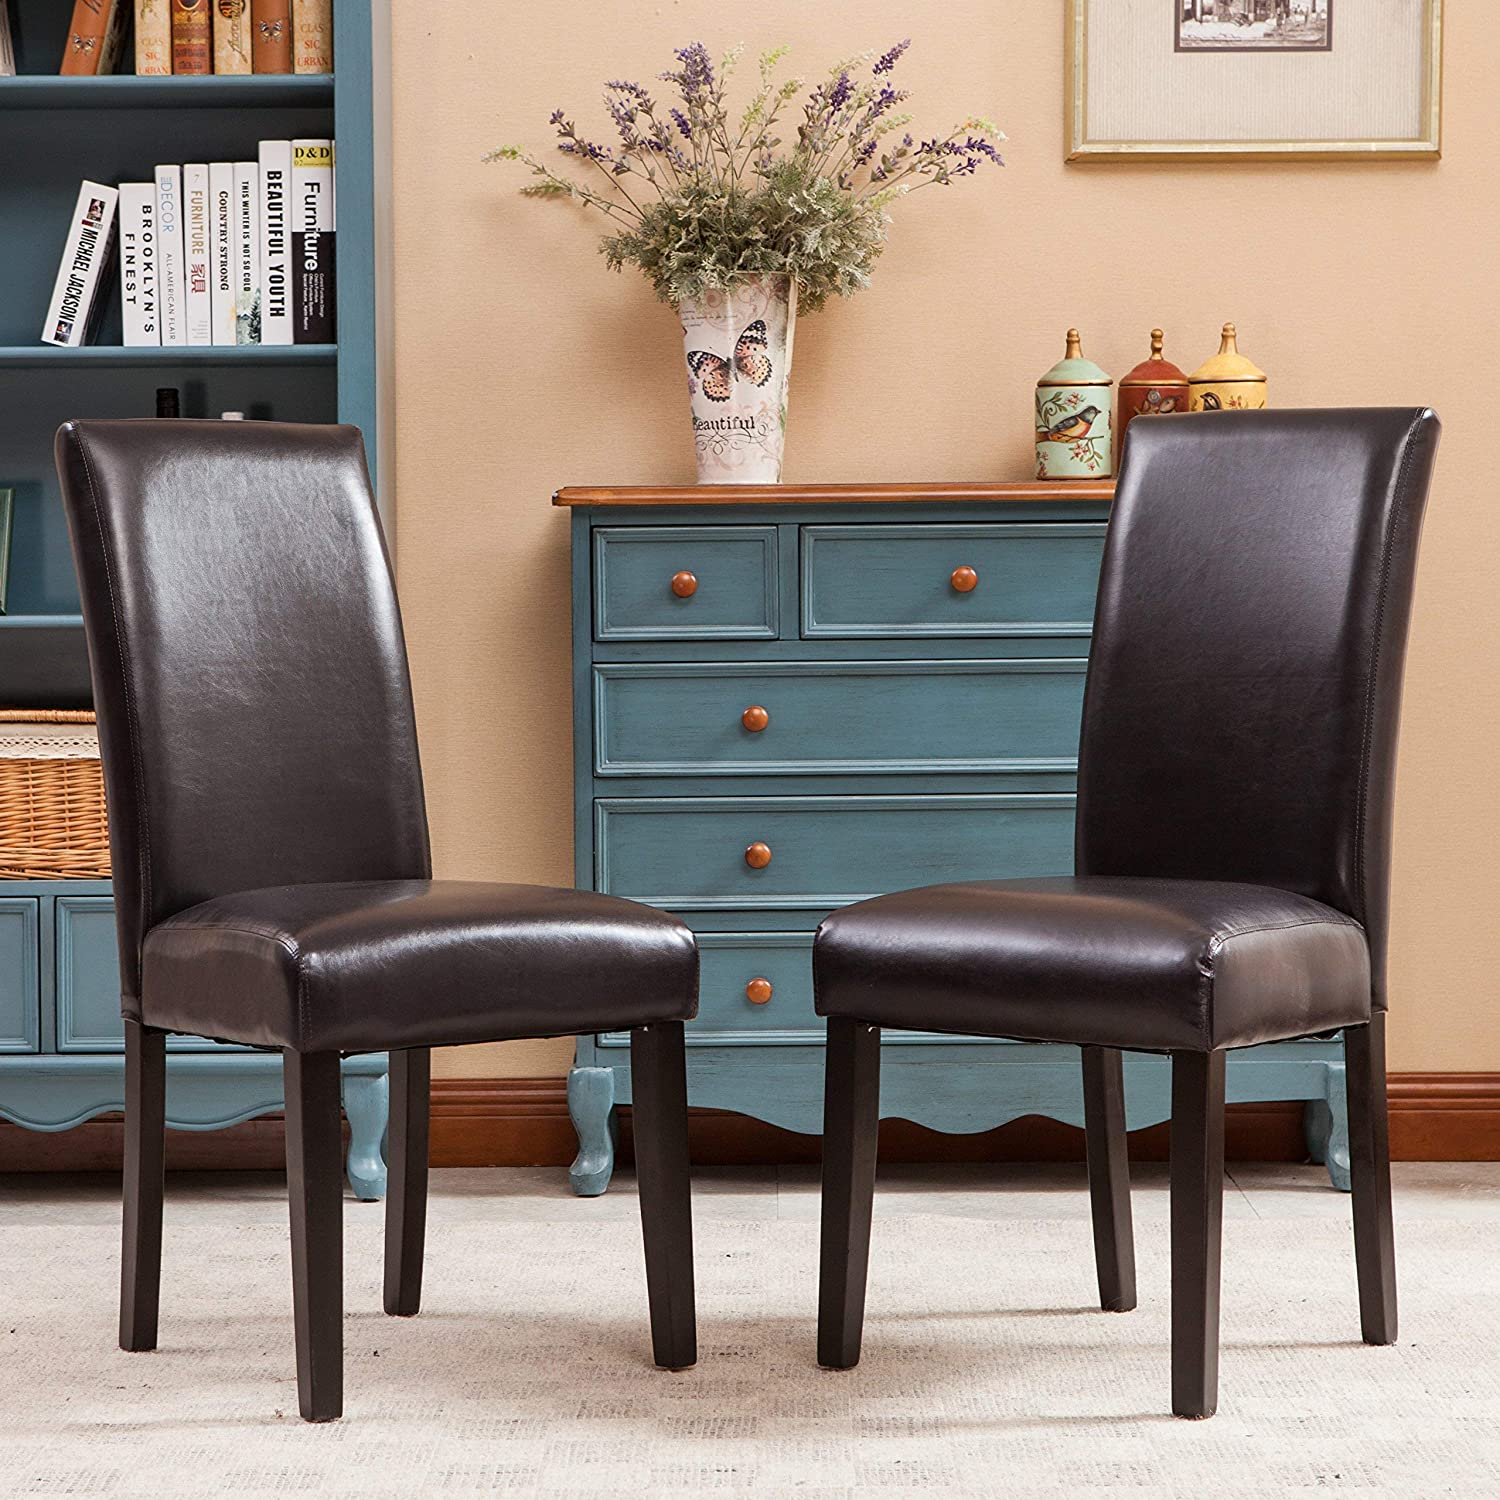 Roundhill Furniture Donatello Urban Style Solid Wood Leatherette Padded Parson Chair (Set of 2), Brown